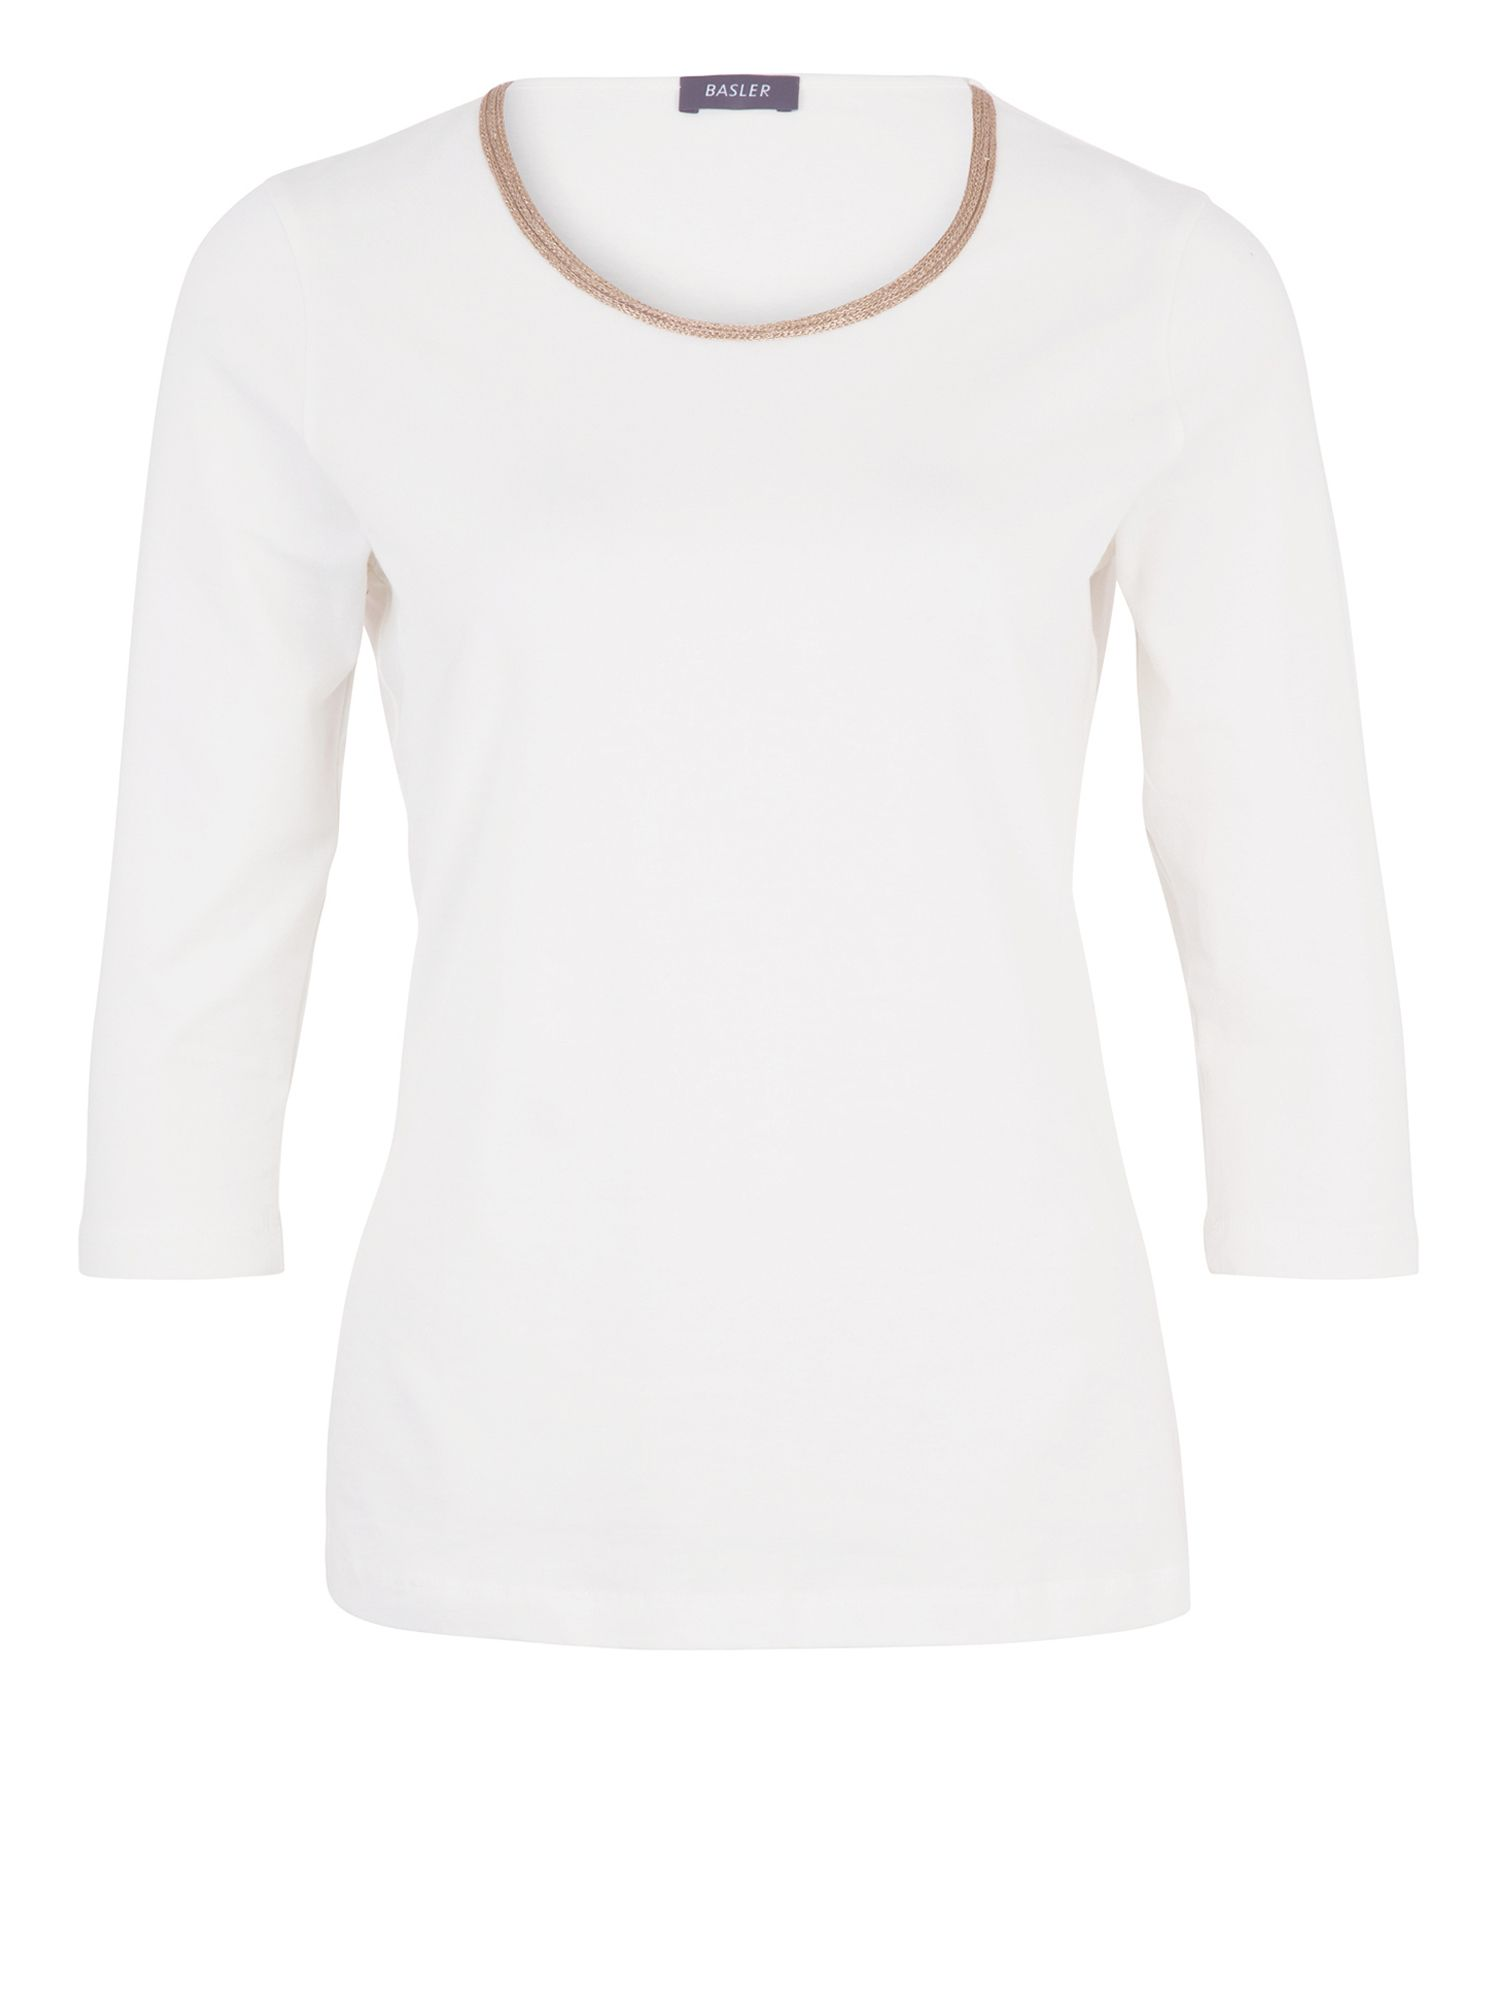 Basler T-shirt With Neck Detail, White